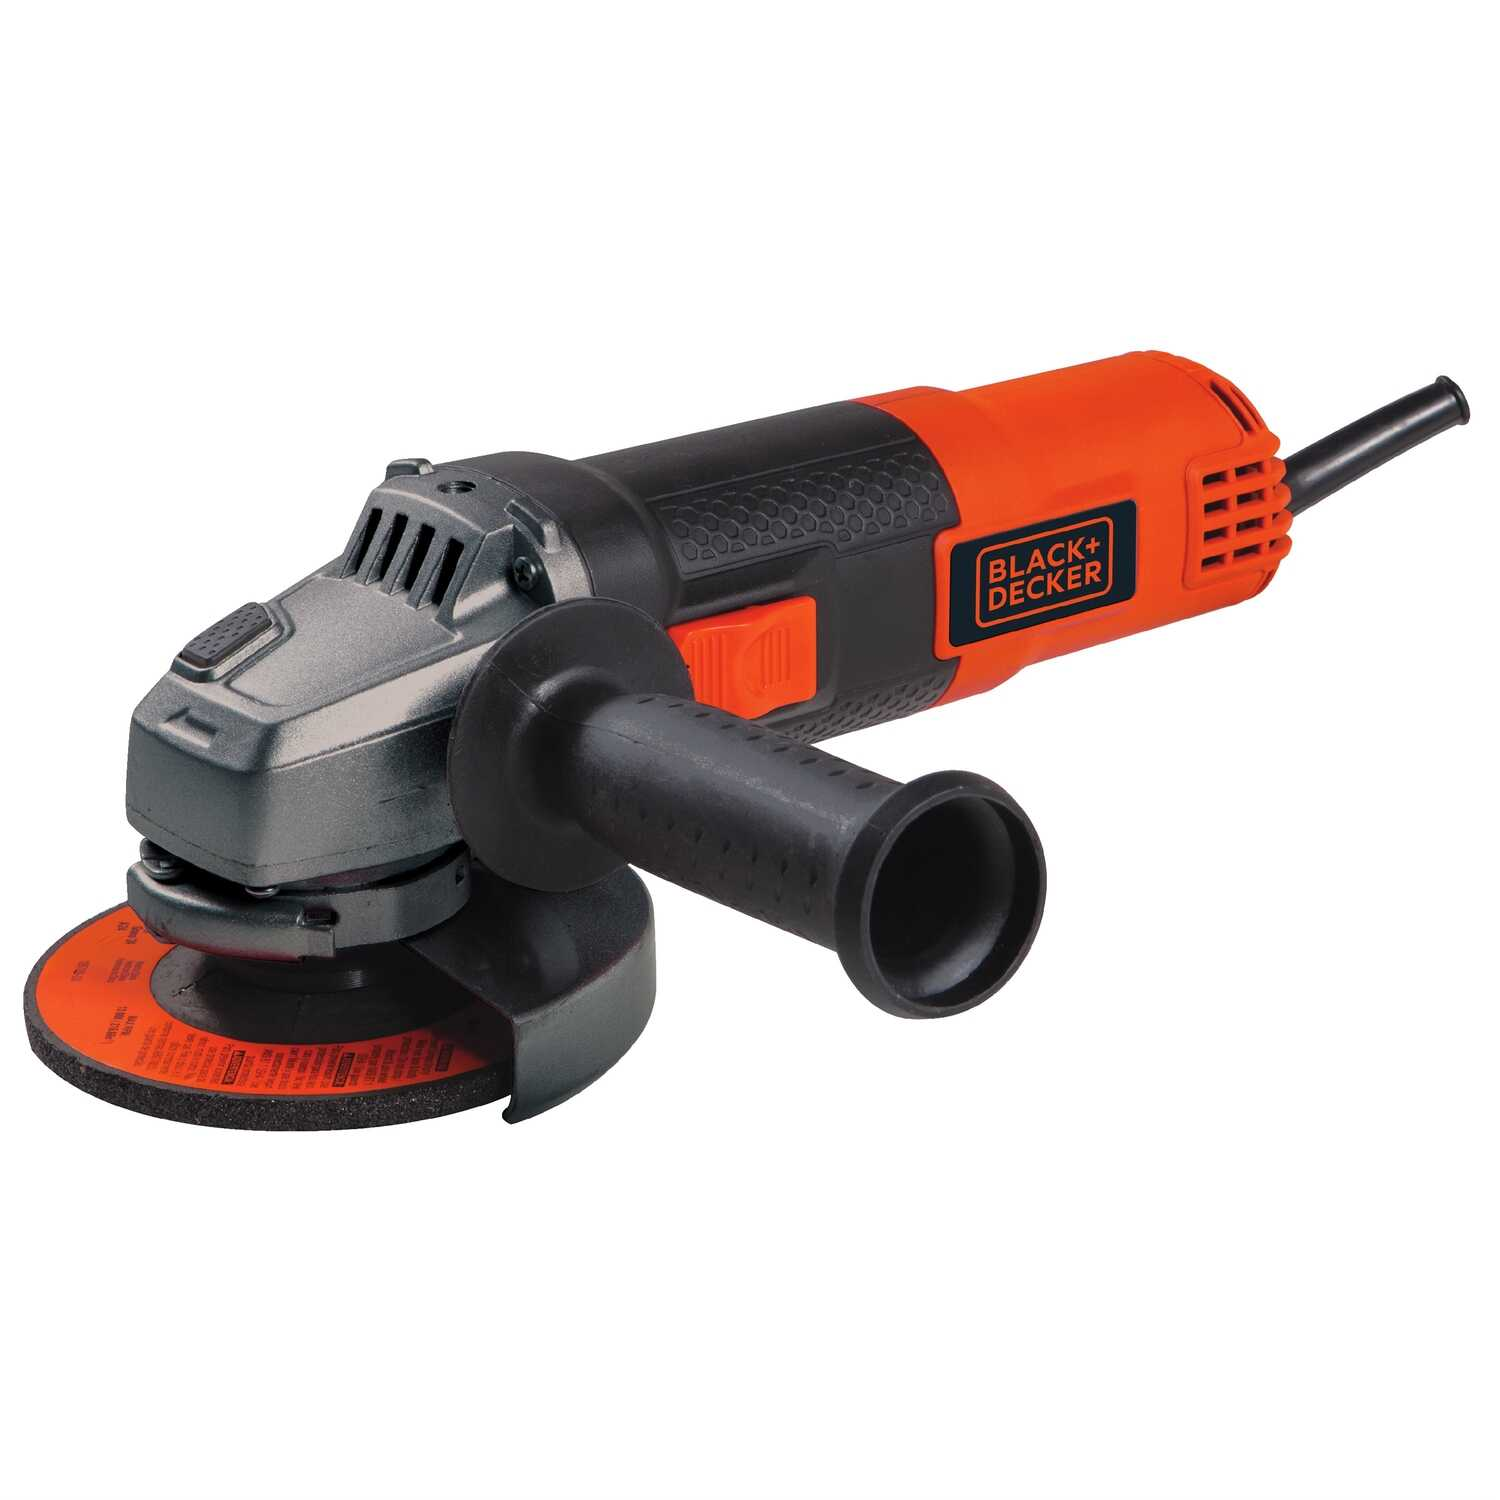 Black and Decker  6 amps Corded  Small  Angle Grinder  4-1/2 in.  10000 rpm